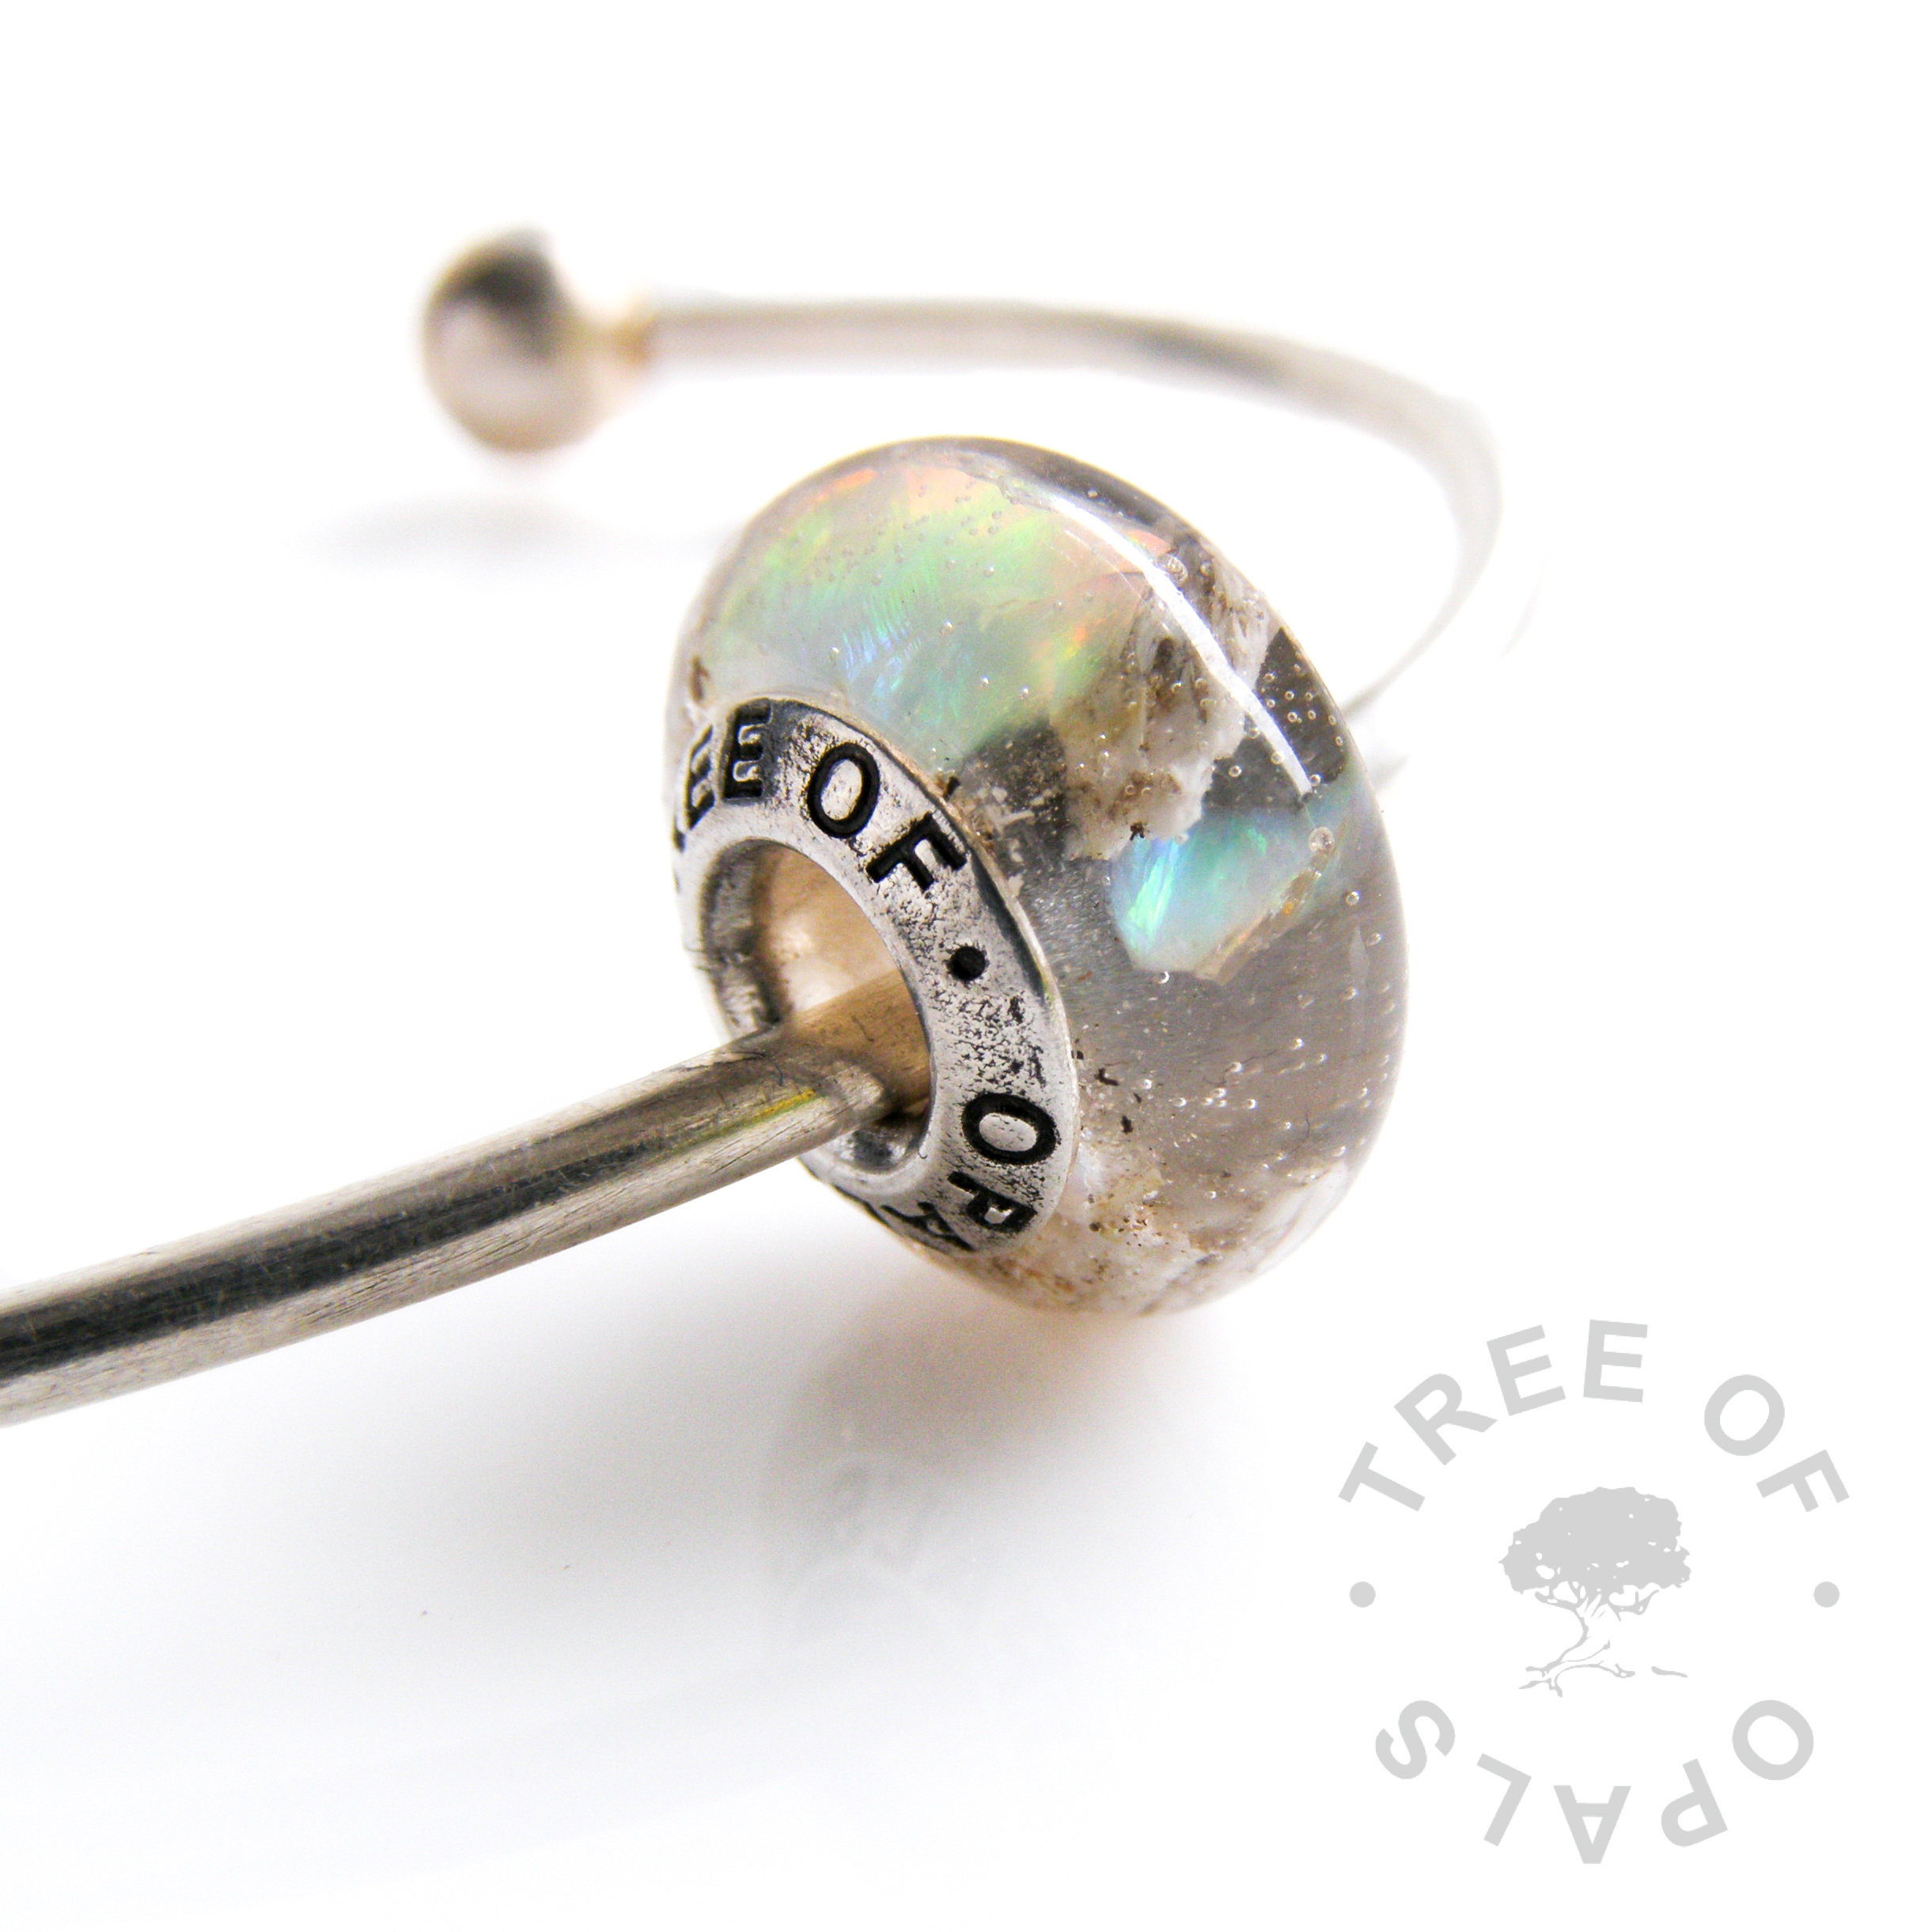 cremation ash charm bead with crystal clear resin and genuine cracked opal (October birthstone) sterling silver Tree of Opals solid core Pandora Chamilia cremains